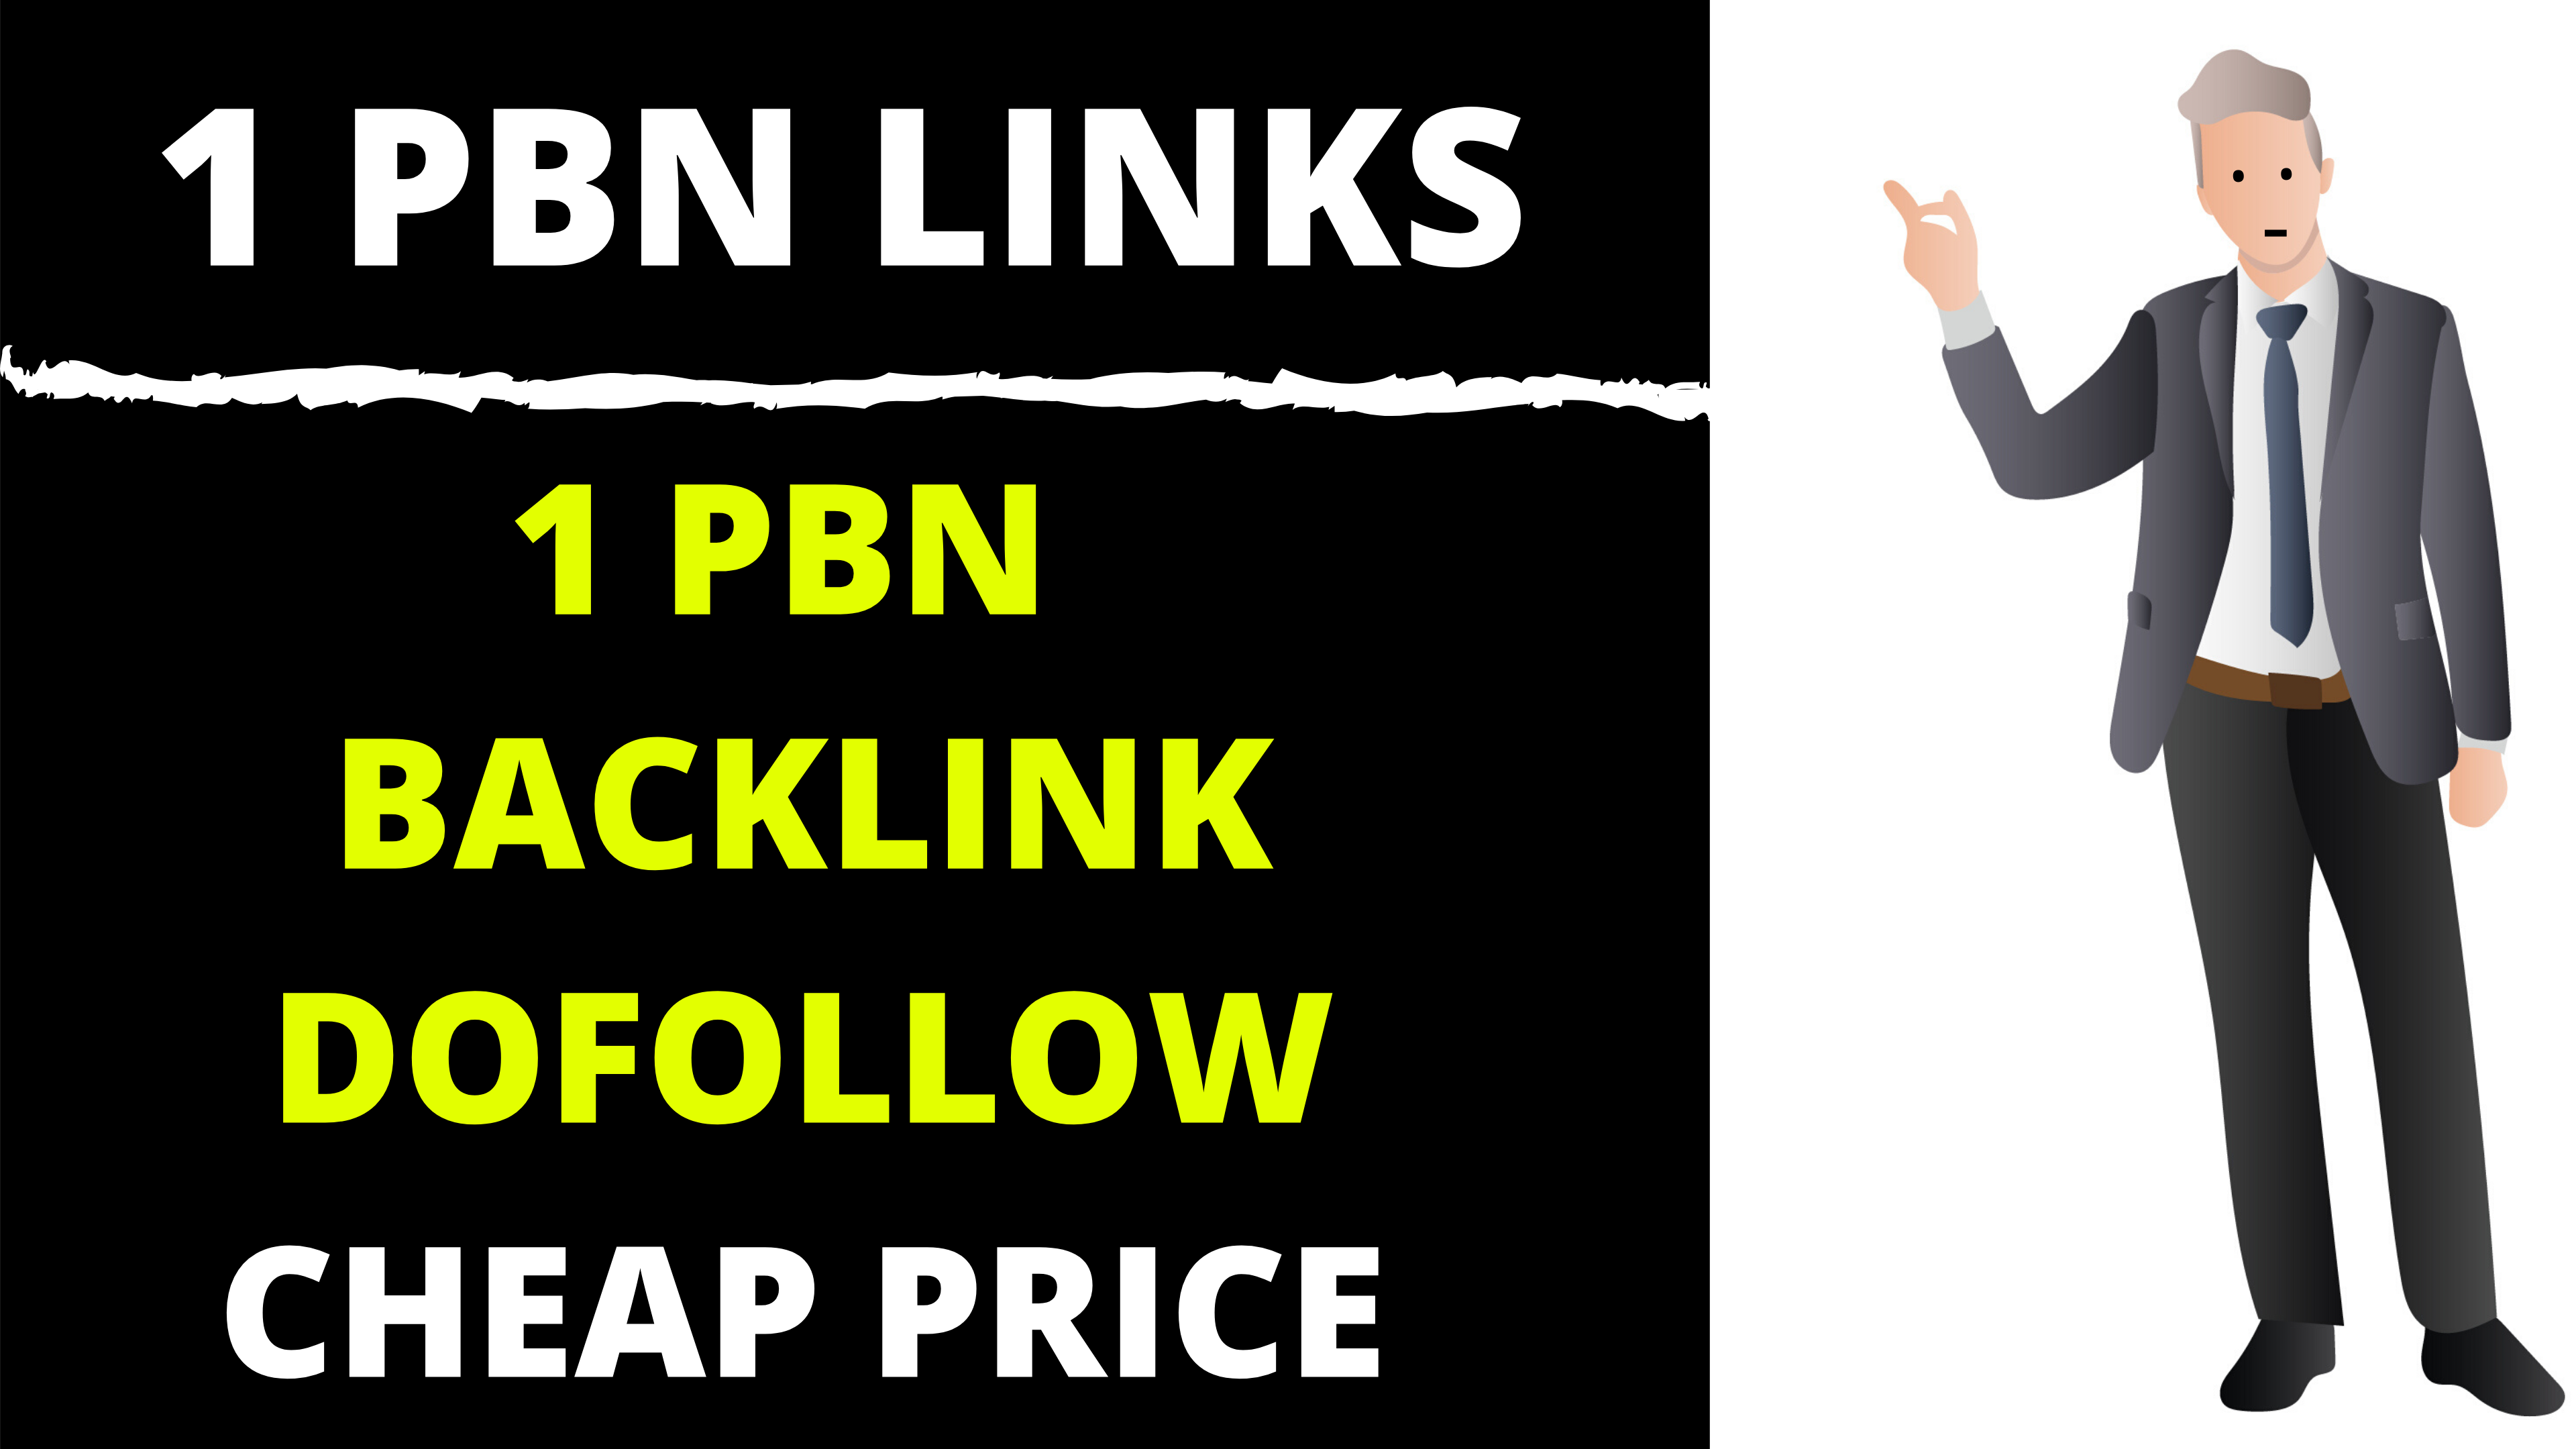 PBN Blog Dofollow Backlinks Cheap Price Limited Time Offer